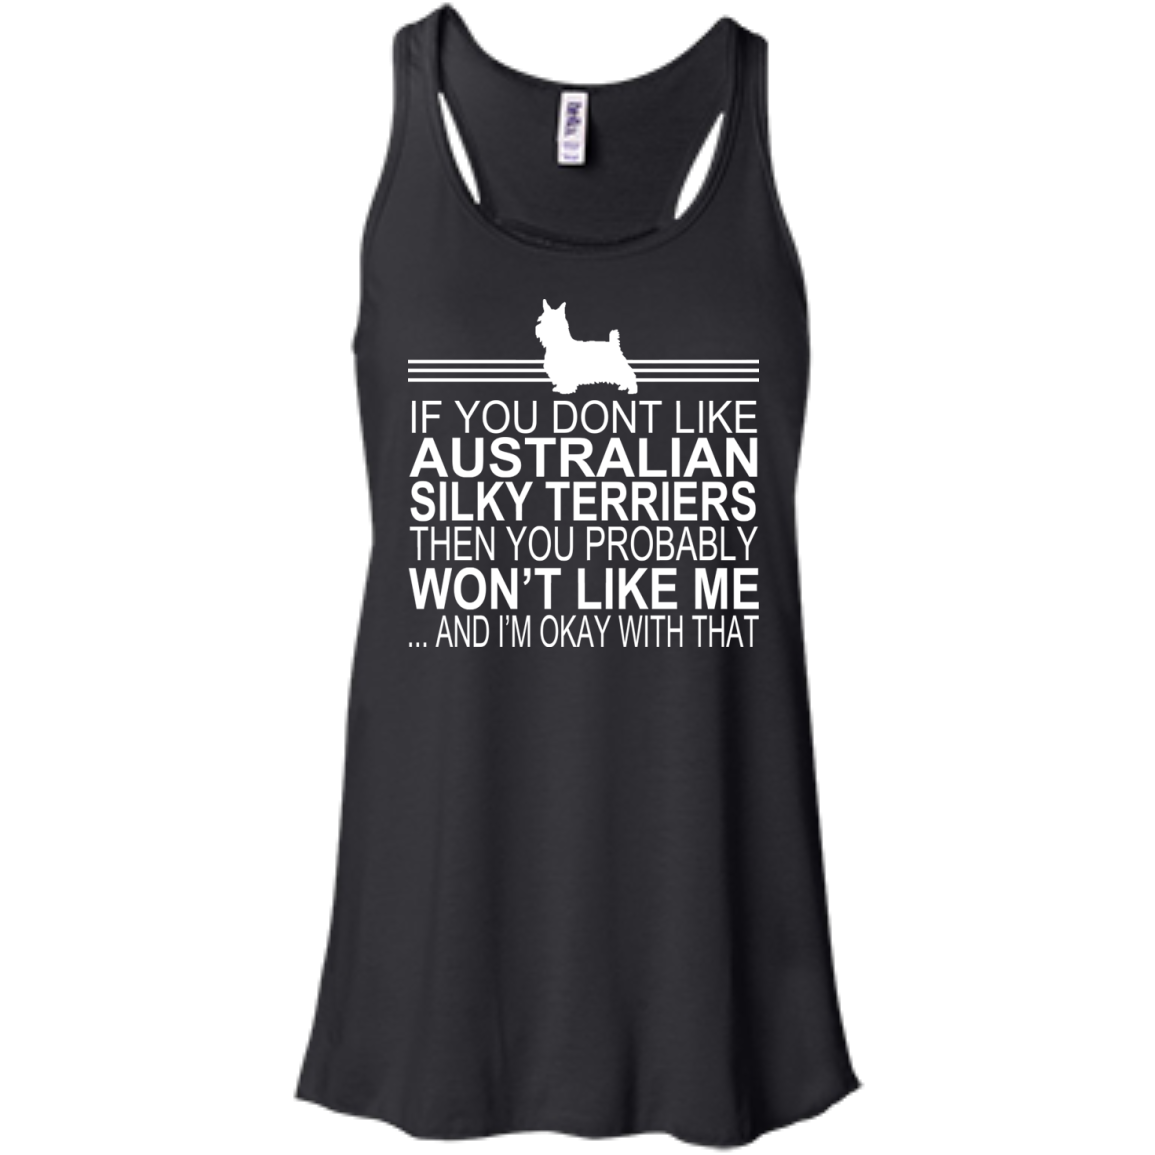 If You Dont Like Australian Silky Terriers Then You Probably Wont Like Me And Im Okay With That Flowy Racerback Tanks